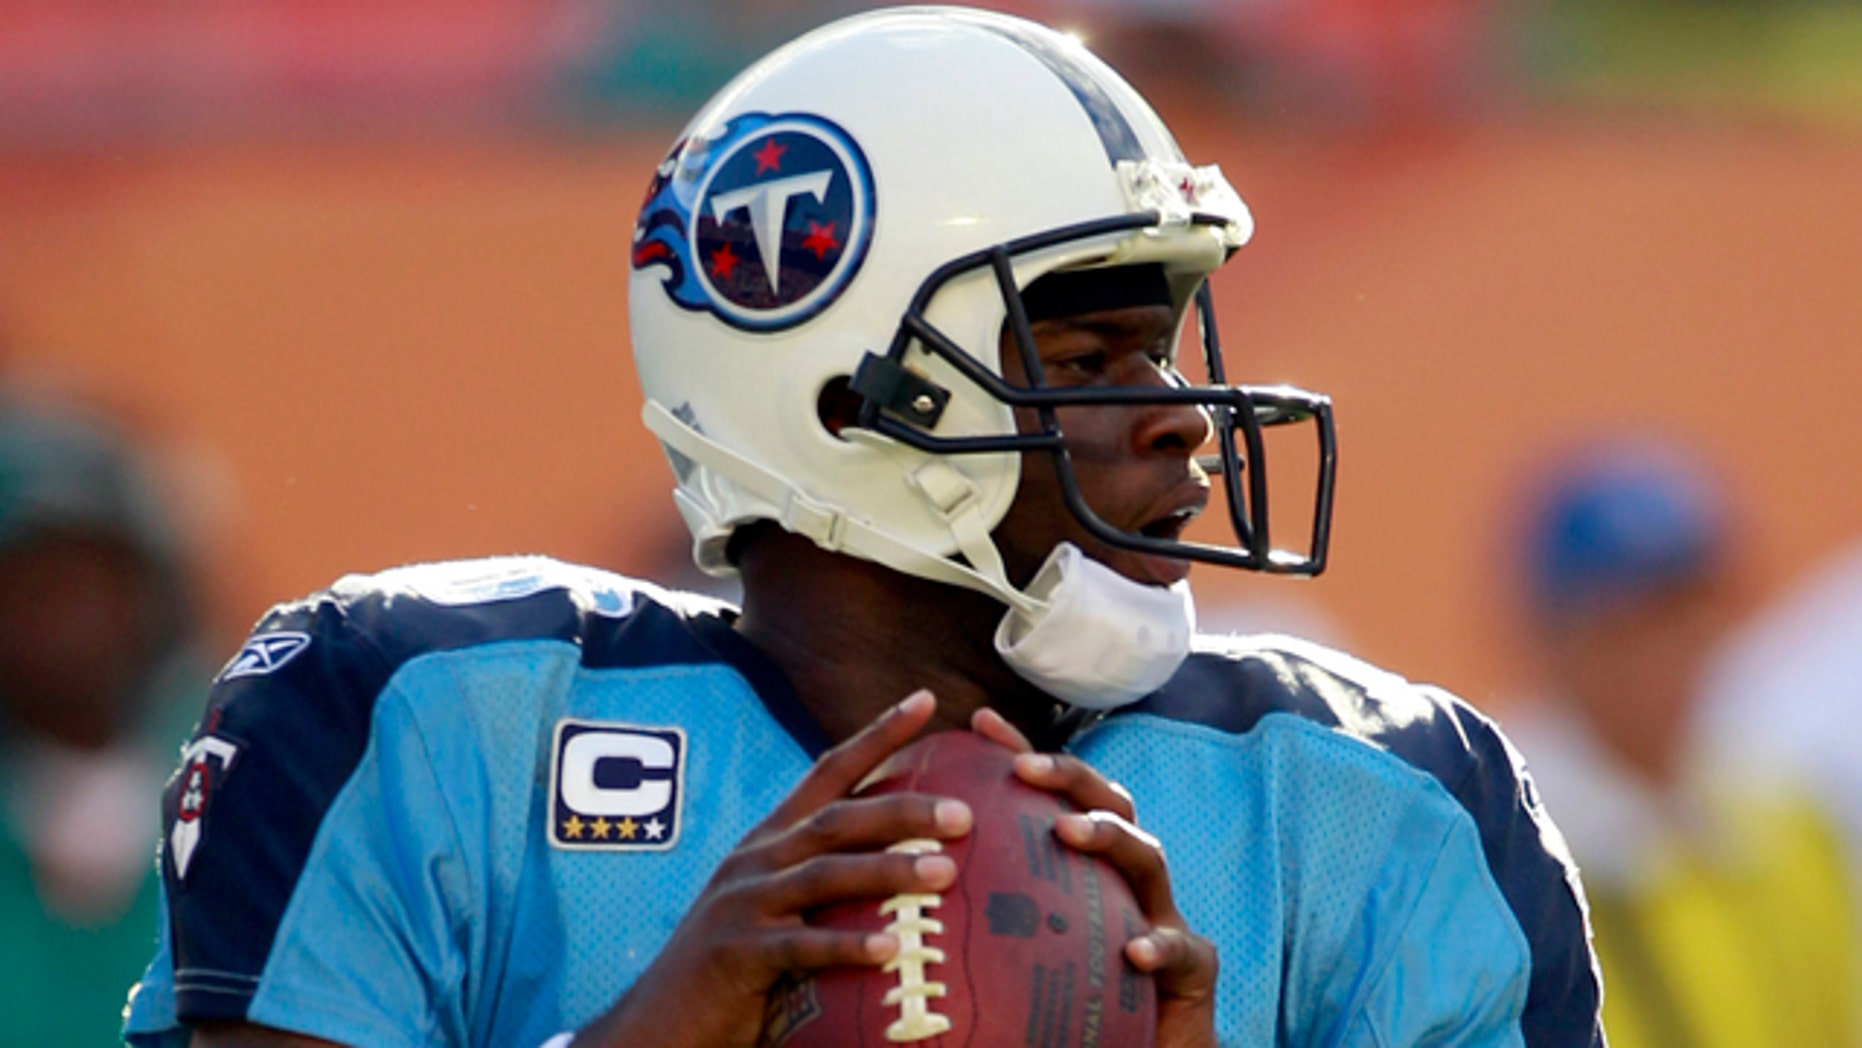 Nov. 14: Tennessee Titans quarterback Vince Young prepares to pass against the Miami Dolphins in the fourth quarter of an NFL football game in Miami.